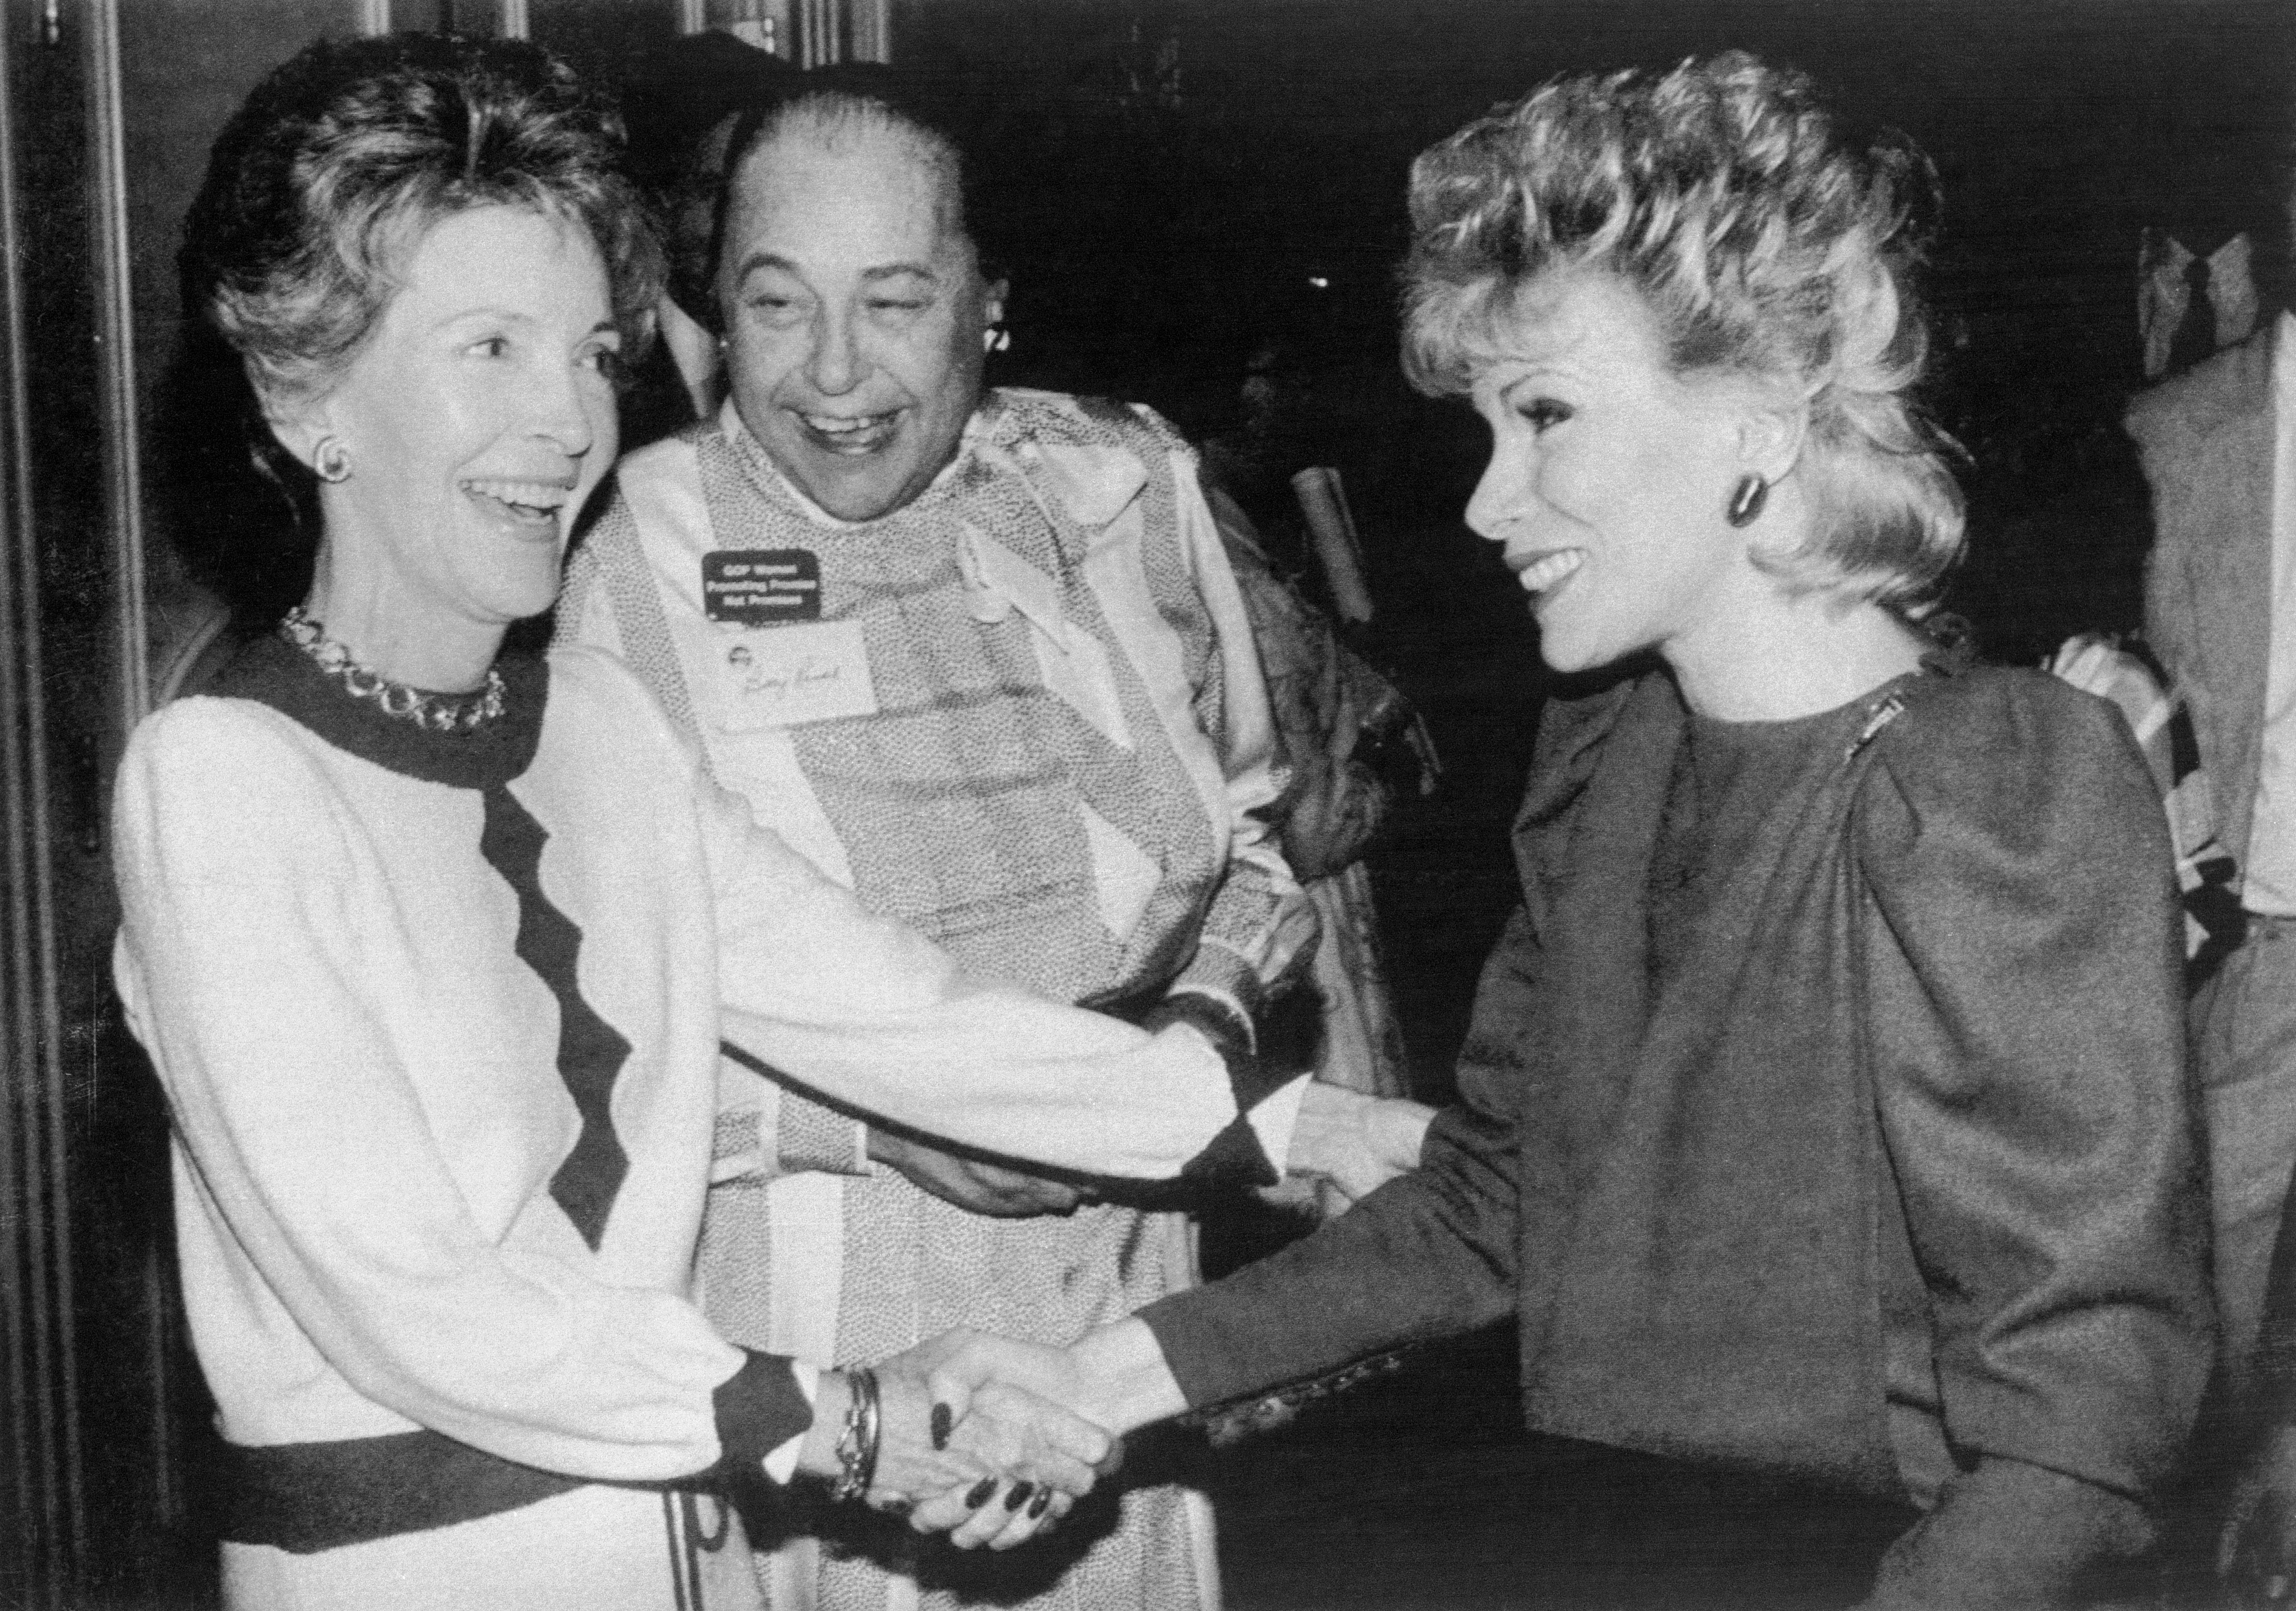 Rivers' celebrity gave her the opportunity to meet prominent figures in show business and politics, including Nancy Reagan in 1984.